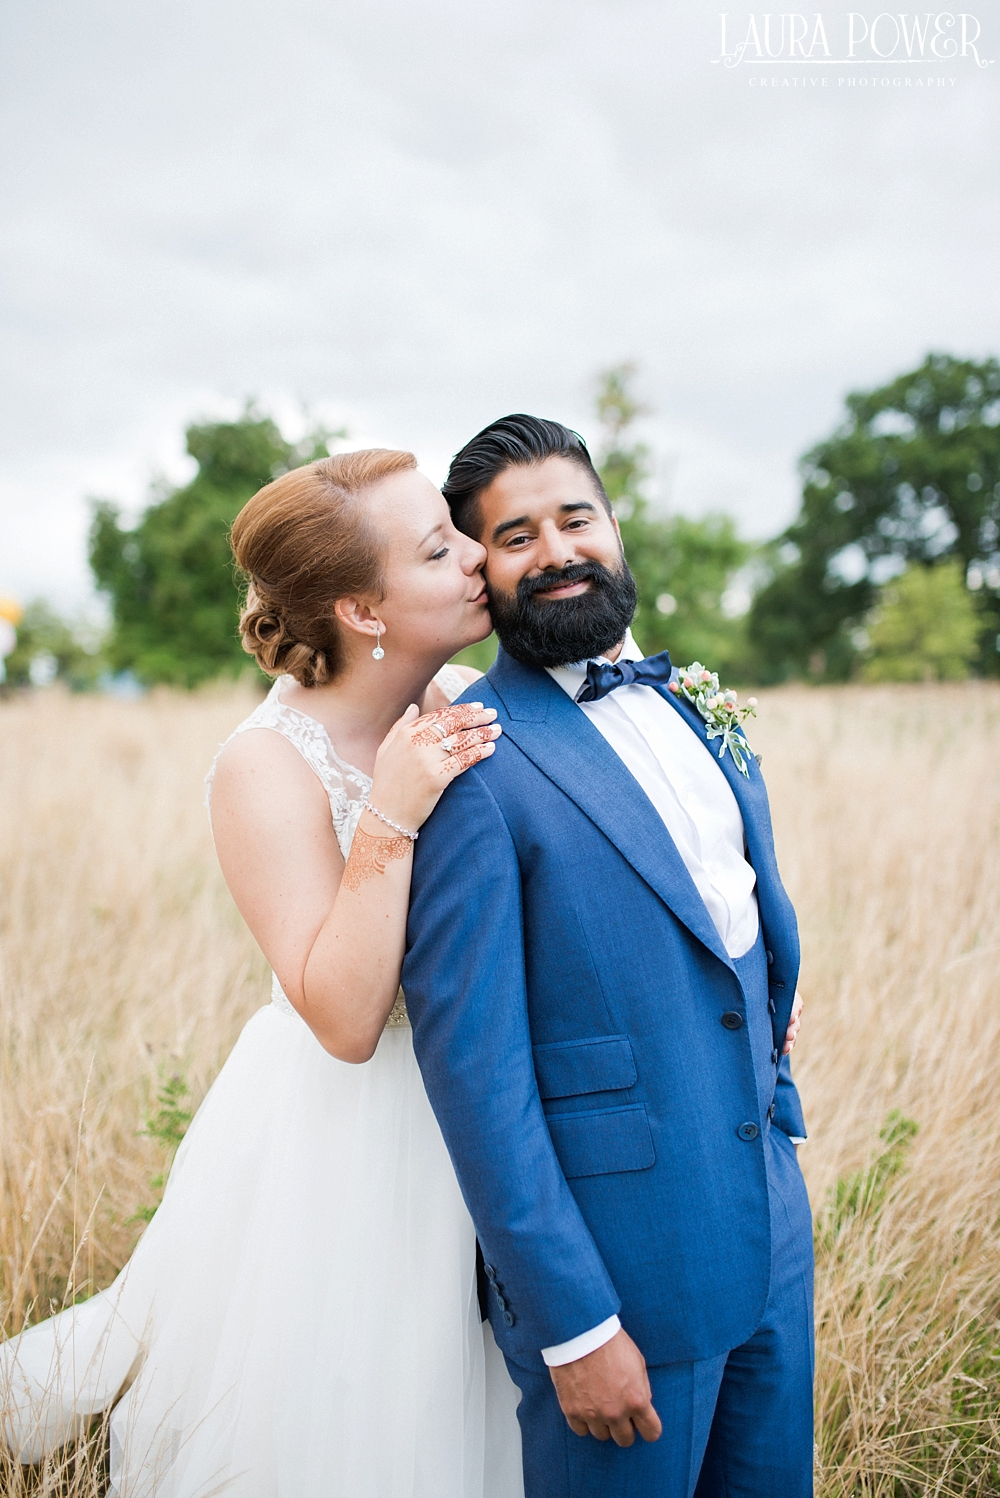 Hannah & Dalraj - Whimsical Wedding Wonderland